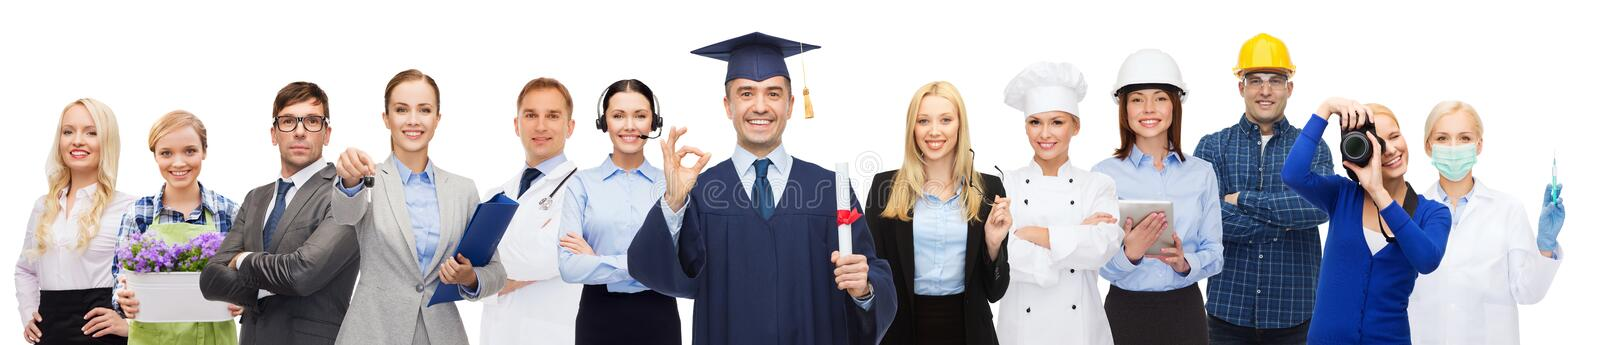 Happy bachelor with diploma over professionals stock photography